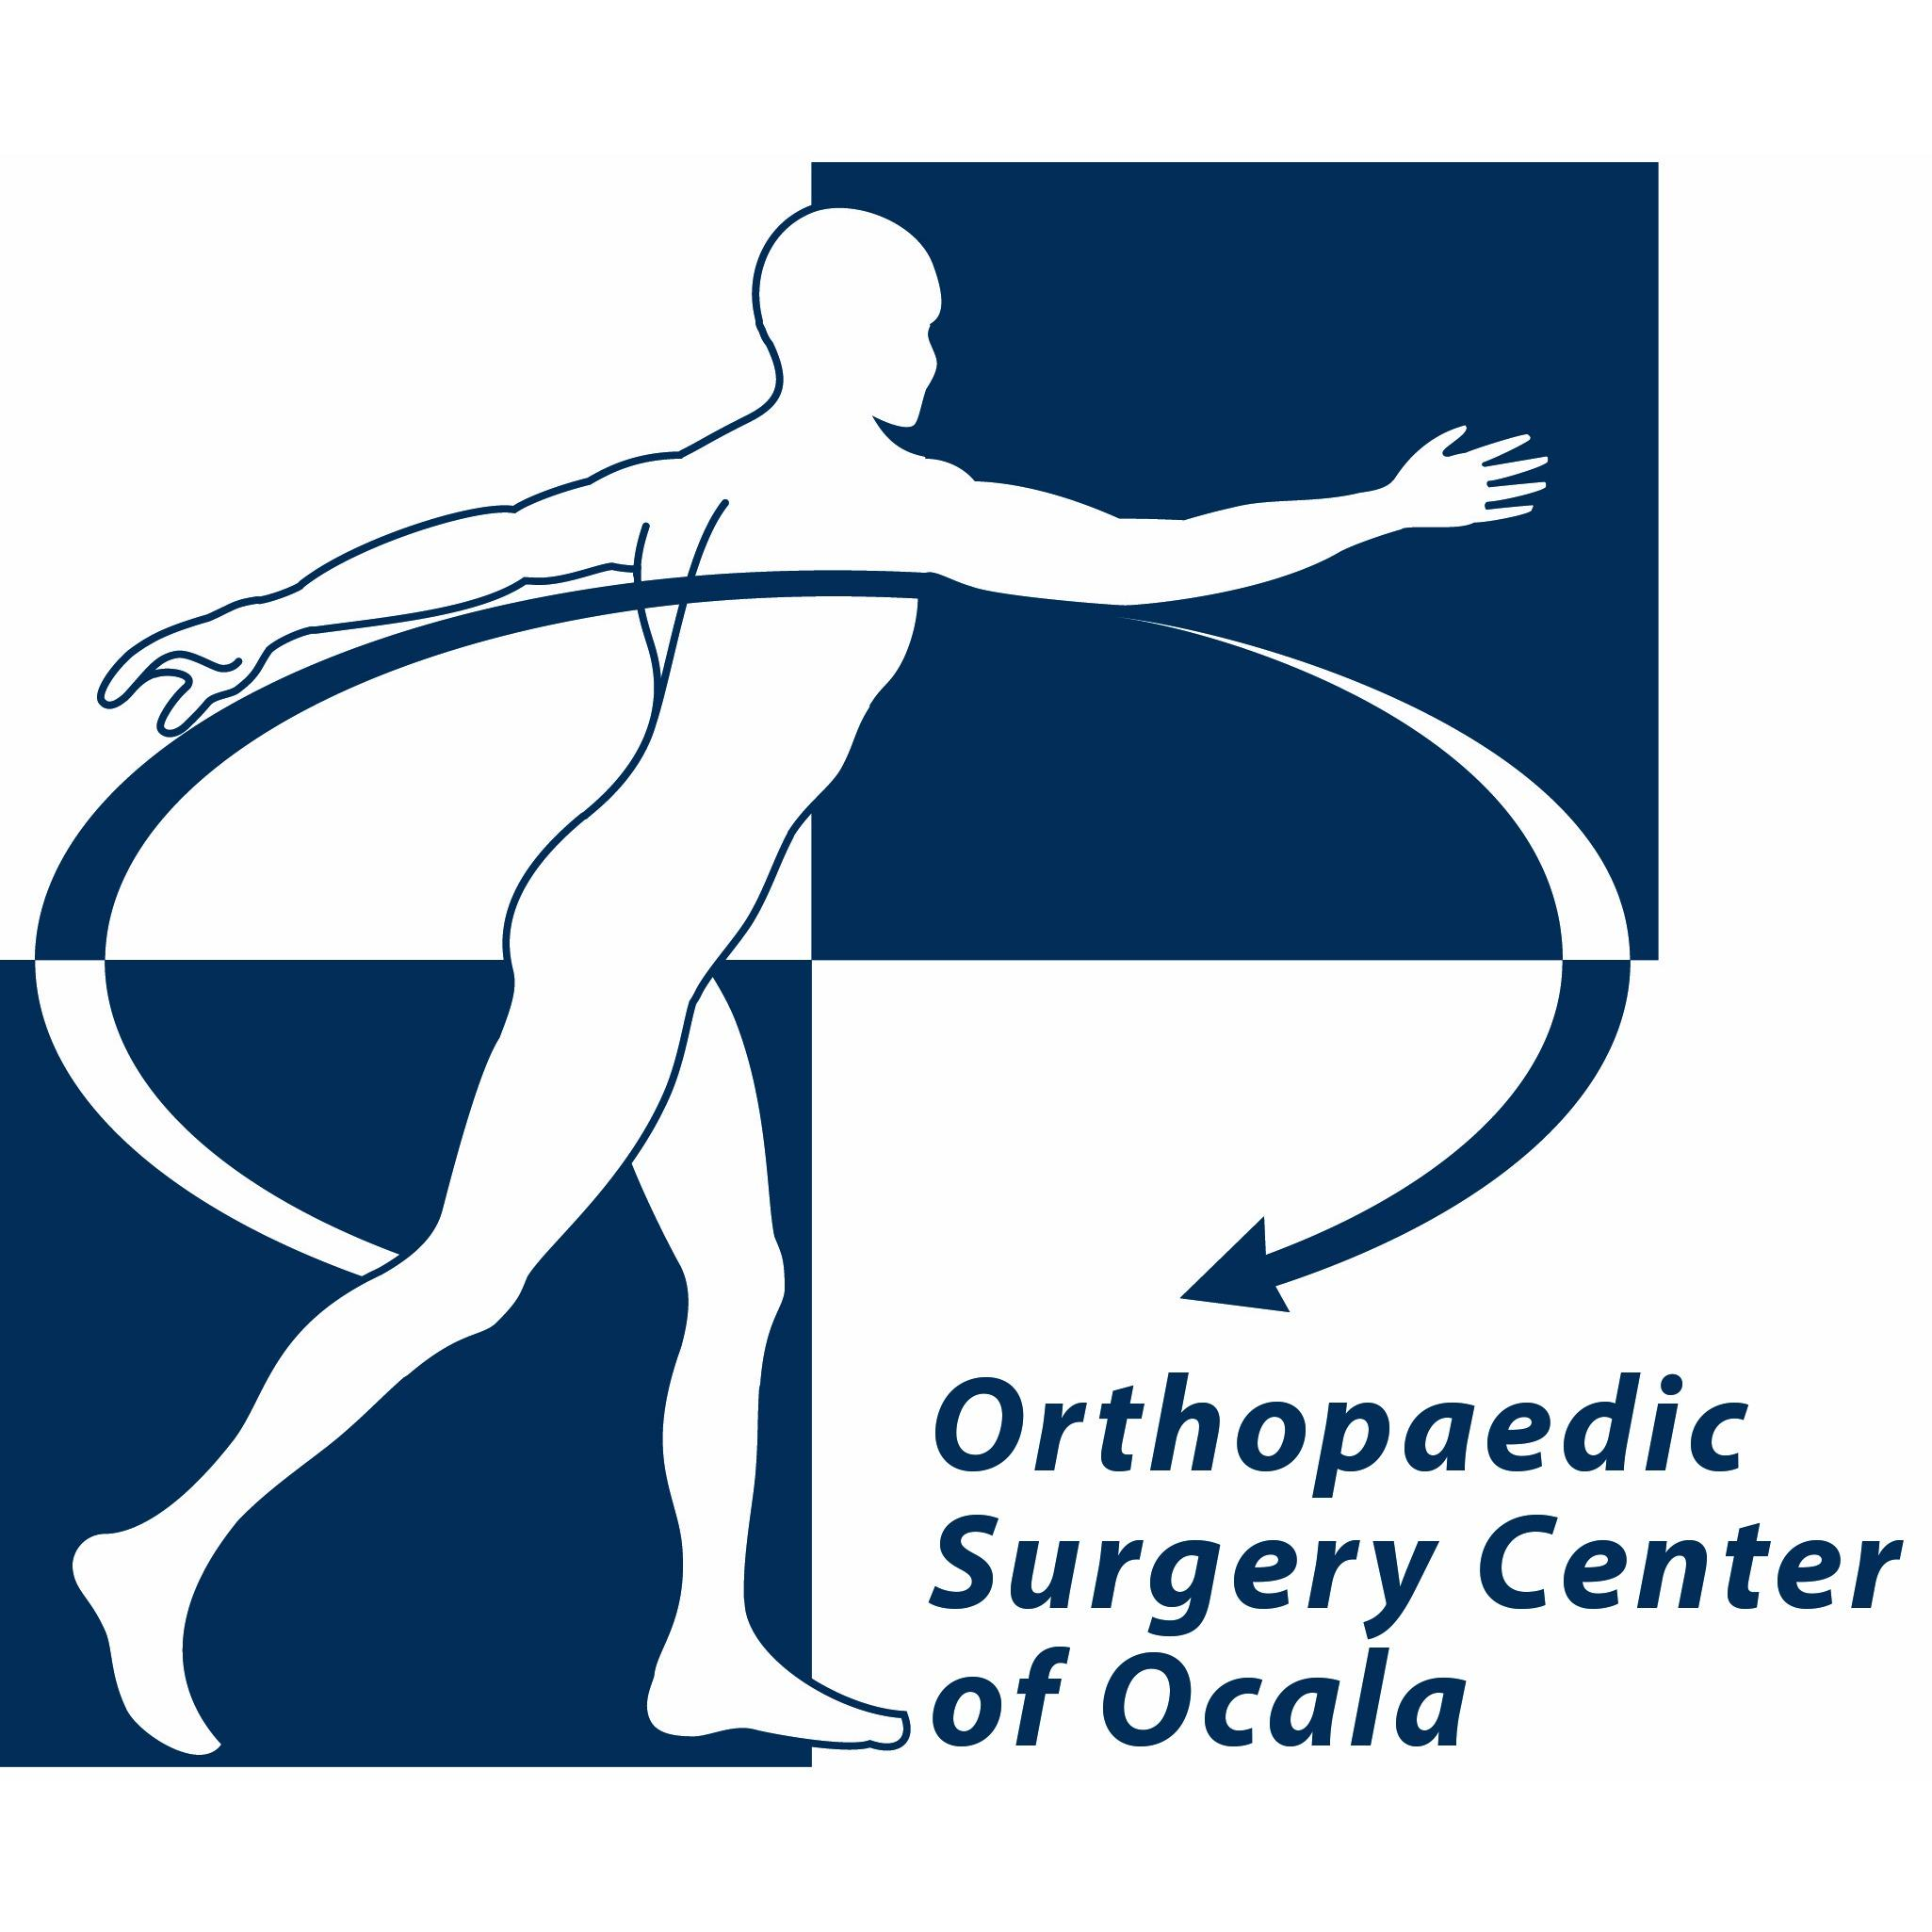 Orthopaedic Surgery Center of Ocala